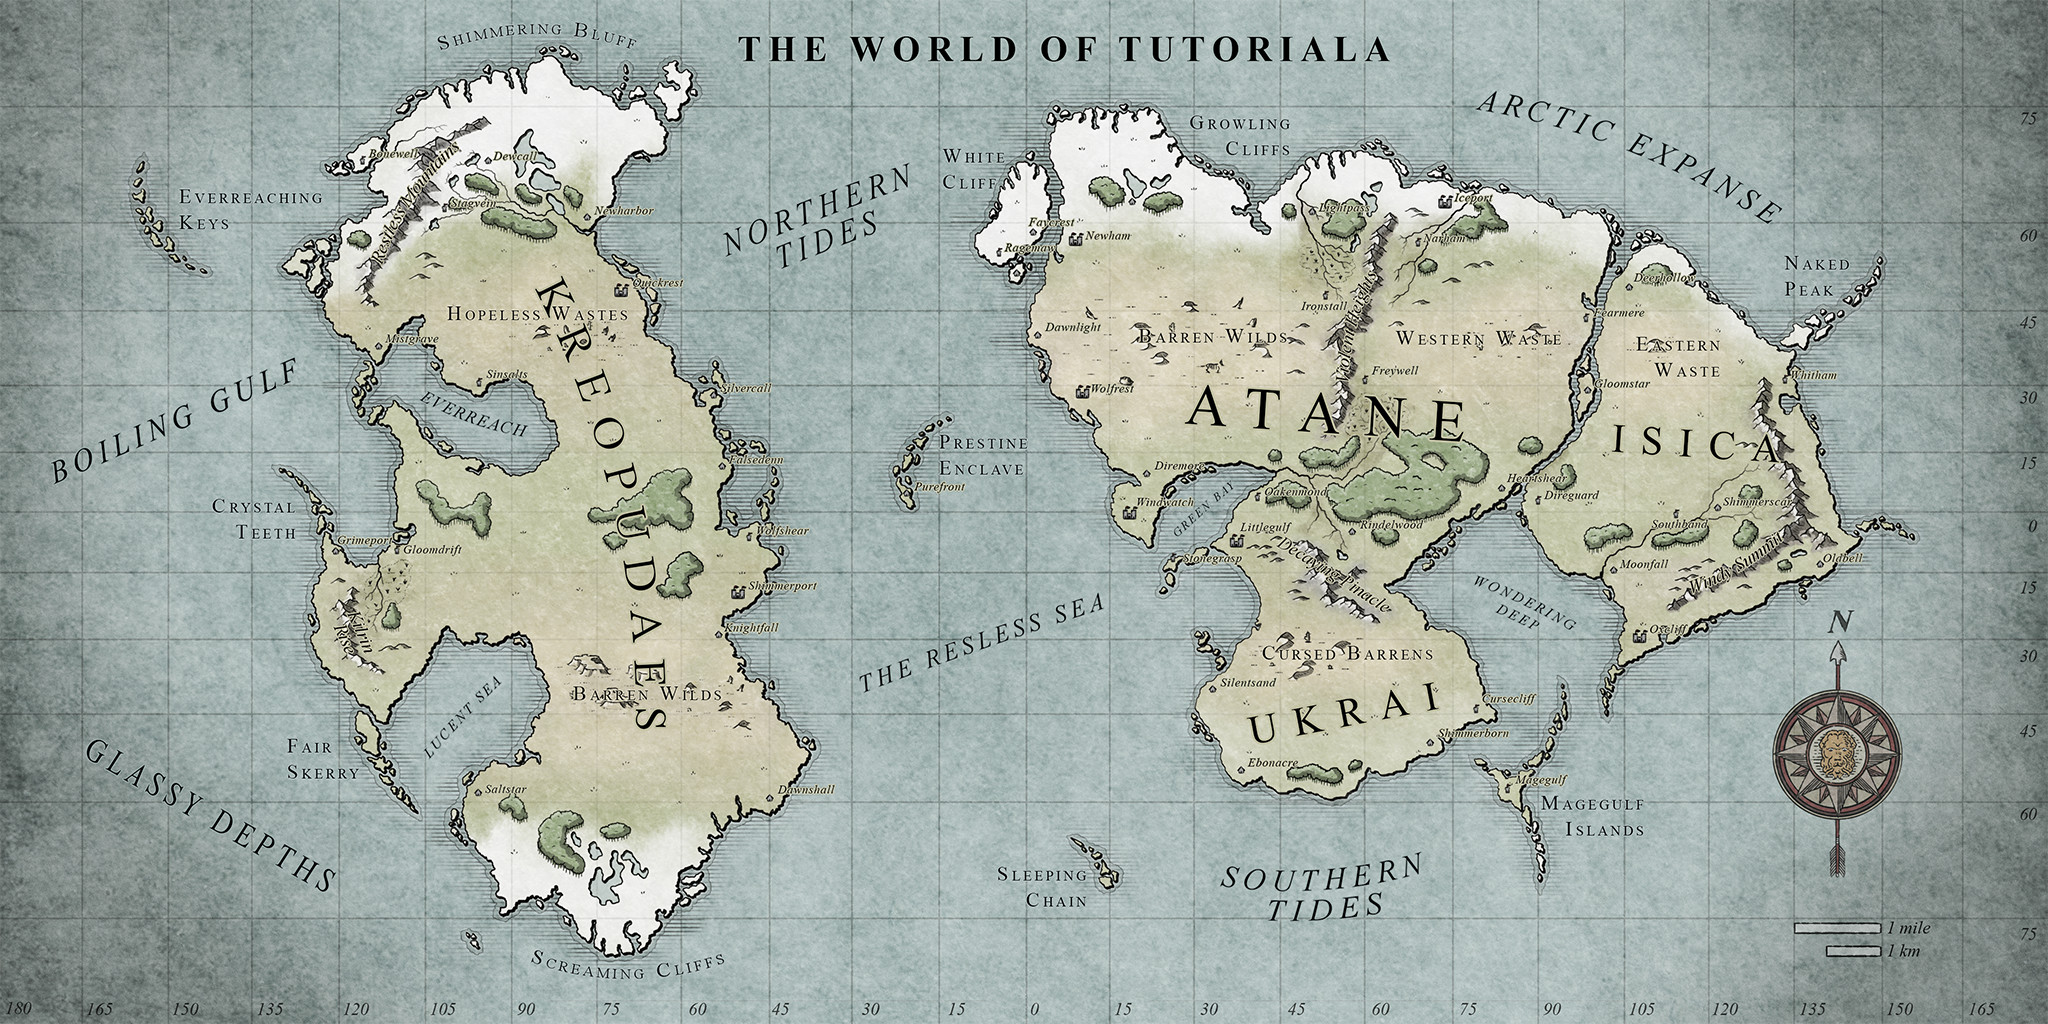 Free Dd World Map Maker.How To Make A Fantasy Map